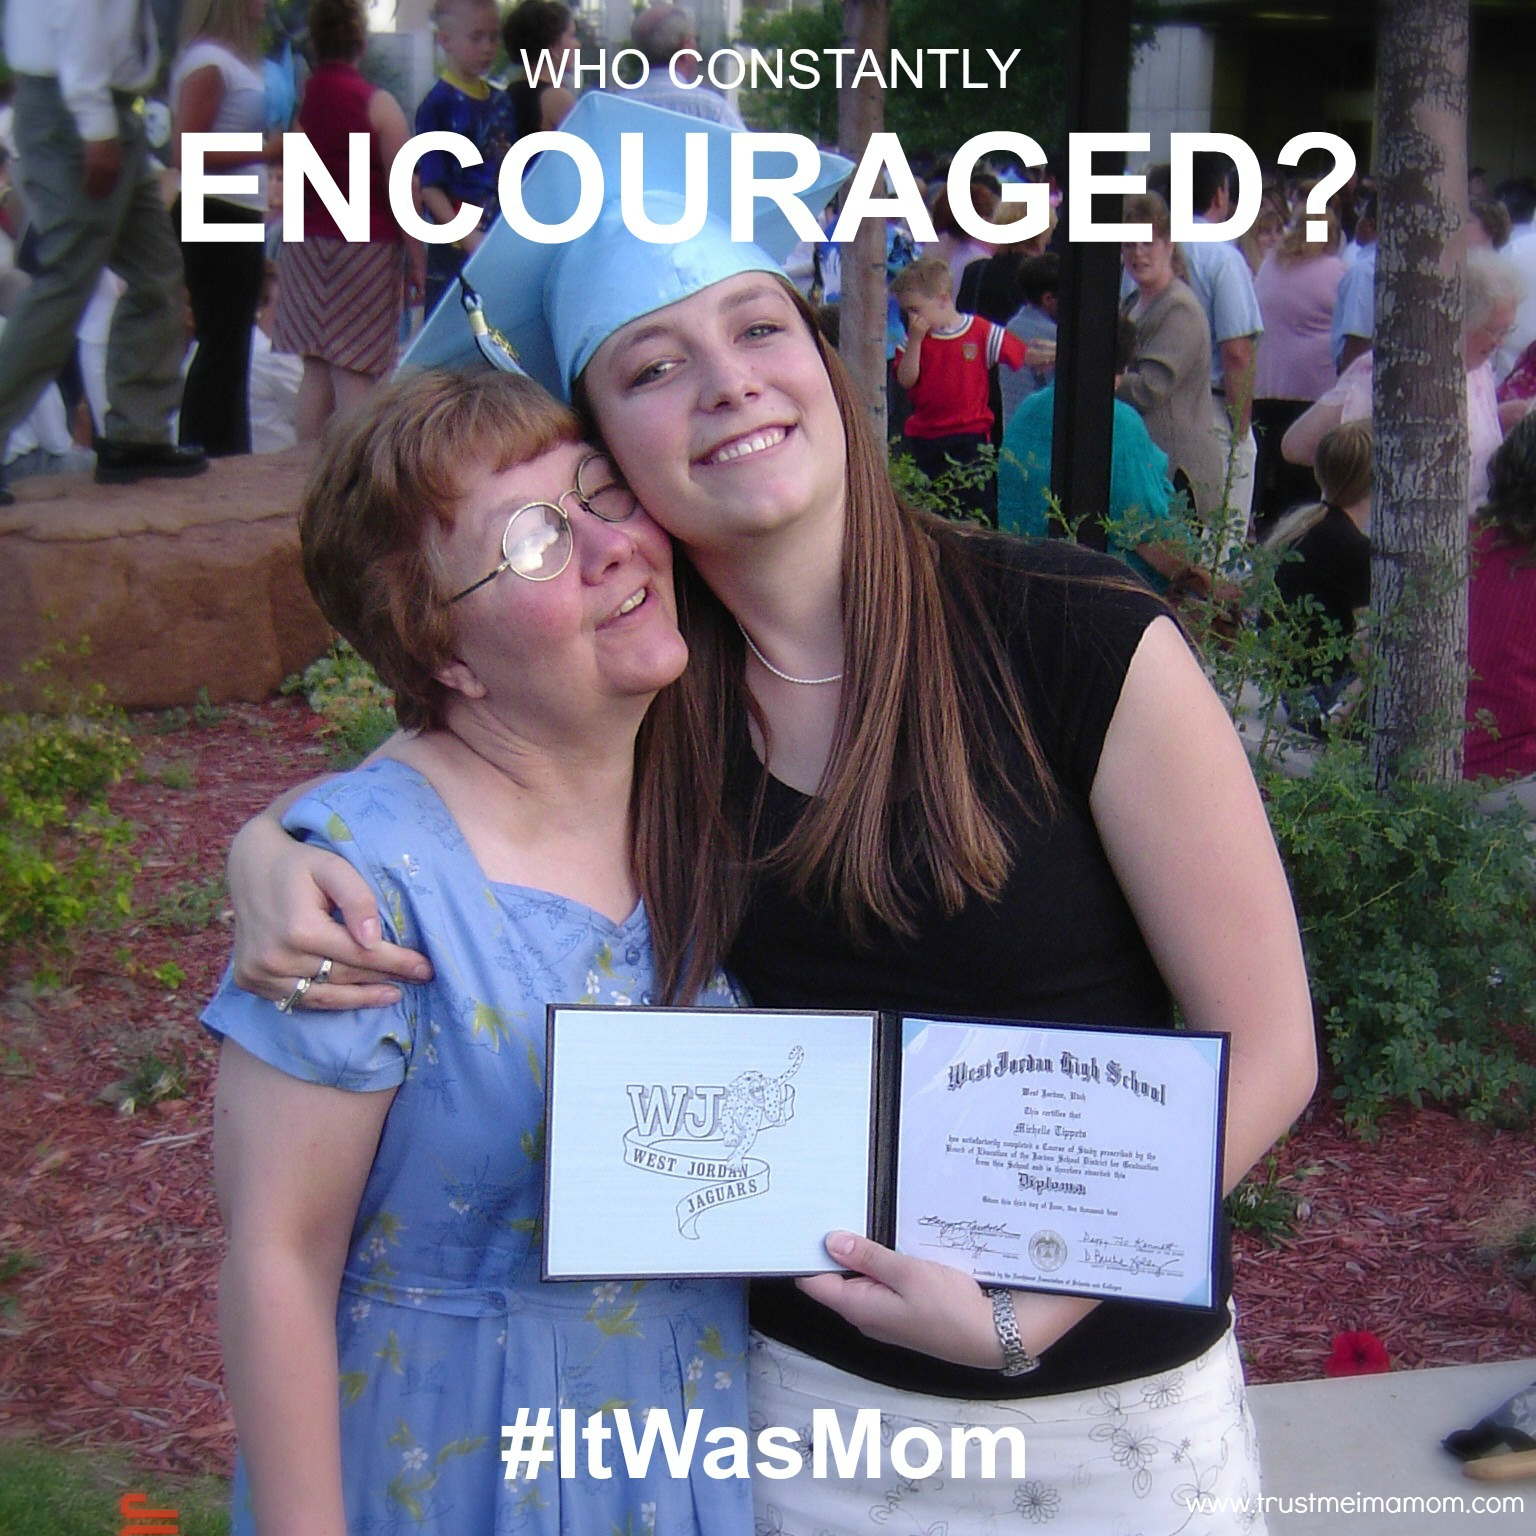 Who Constandly Encouraged? #ItWasMom